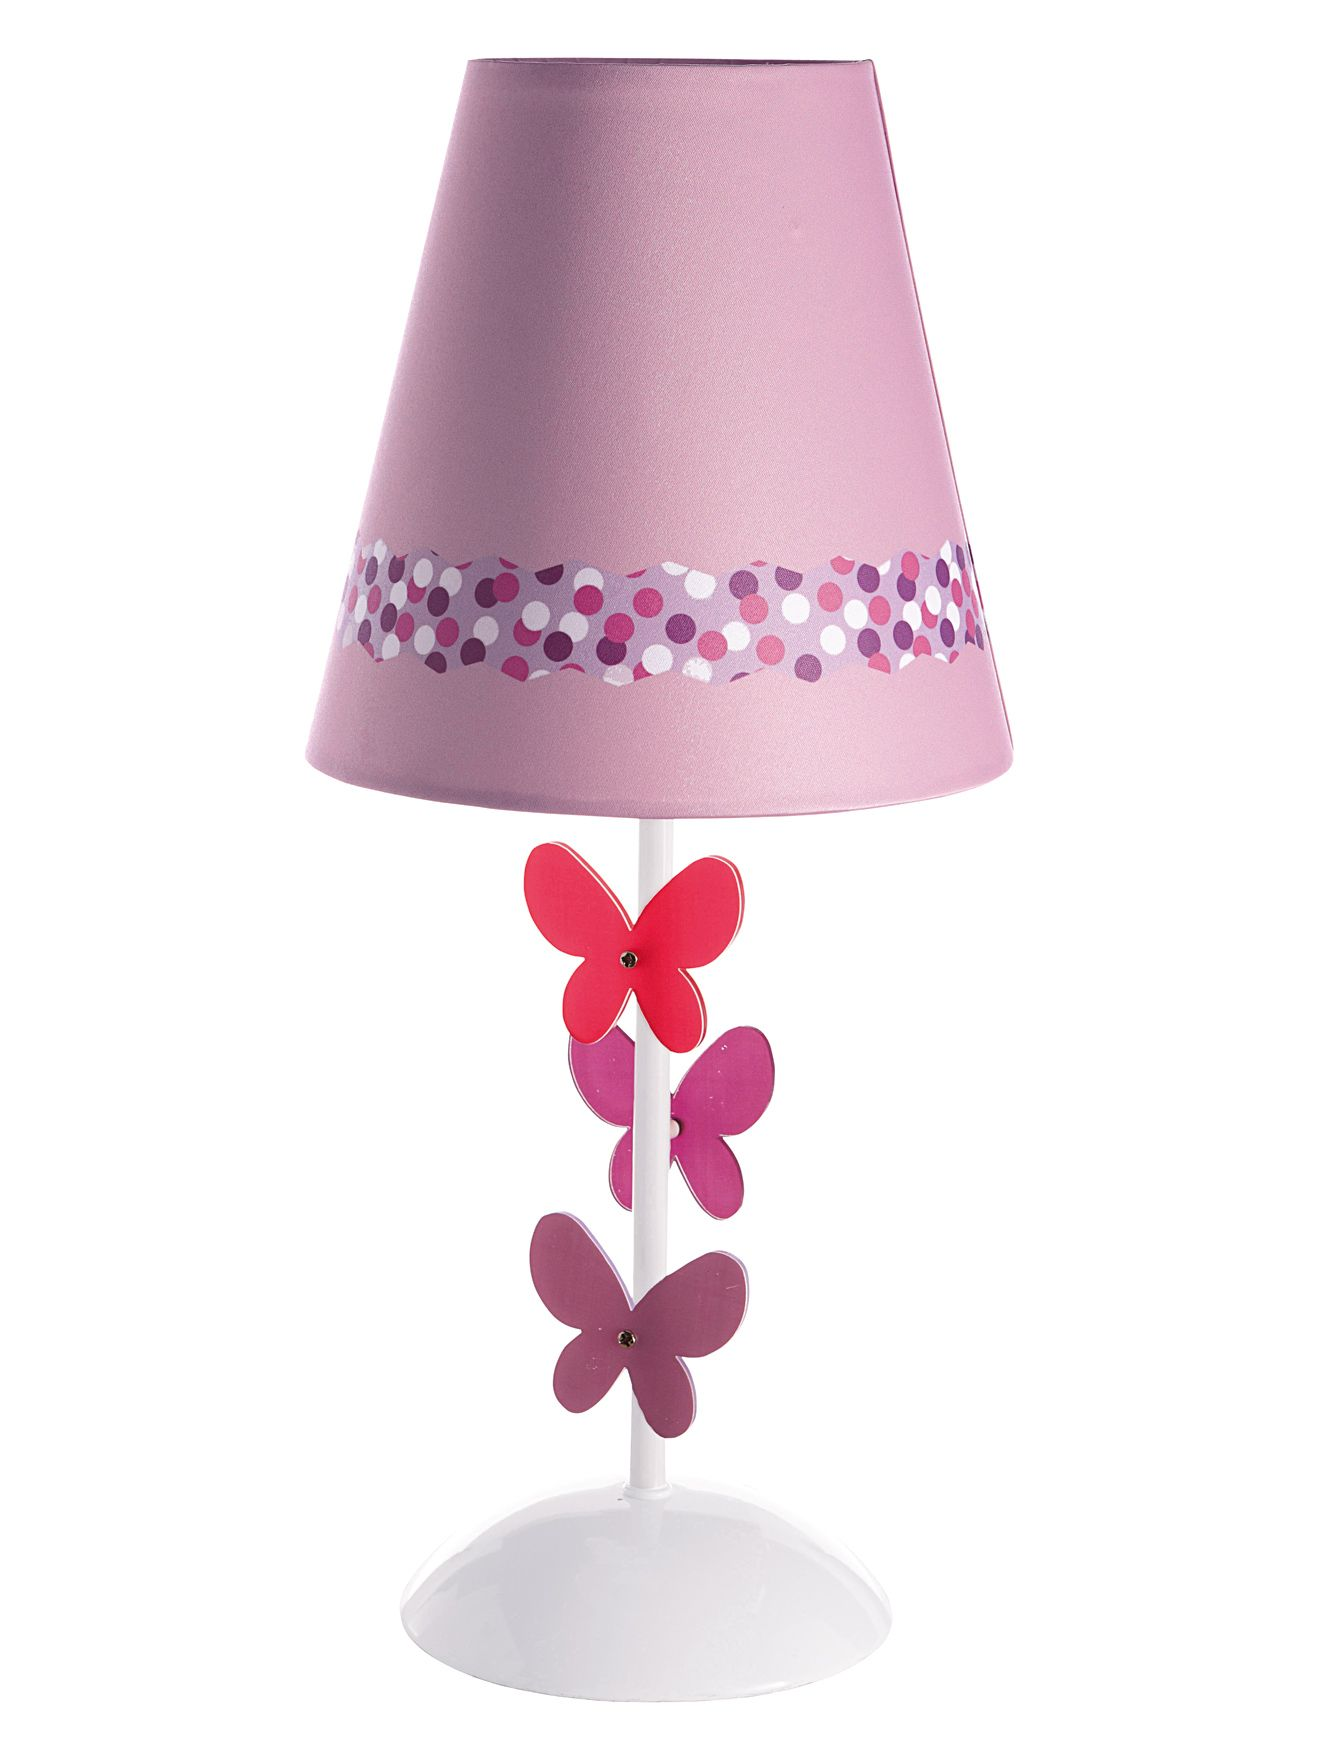 Lampe de chevet papi mini ros imprim lampe de chevet for Mini table de chevet